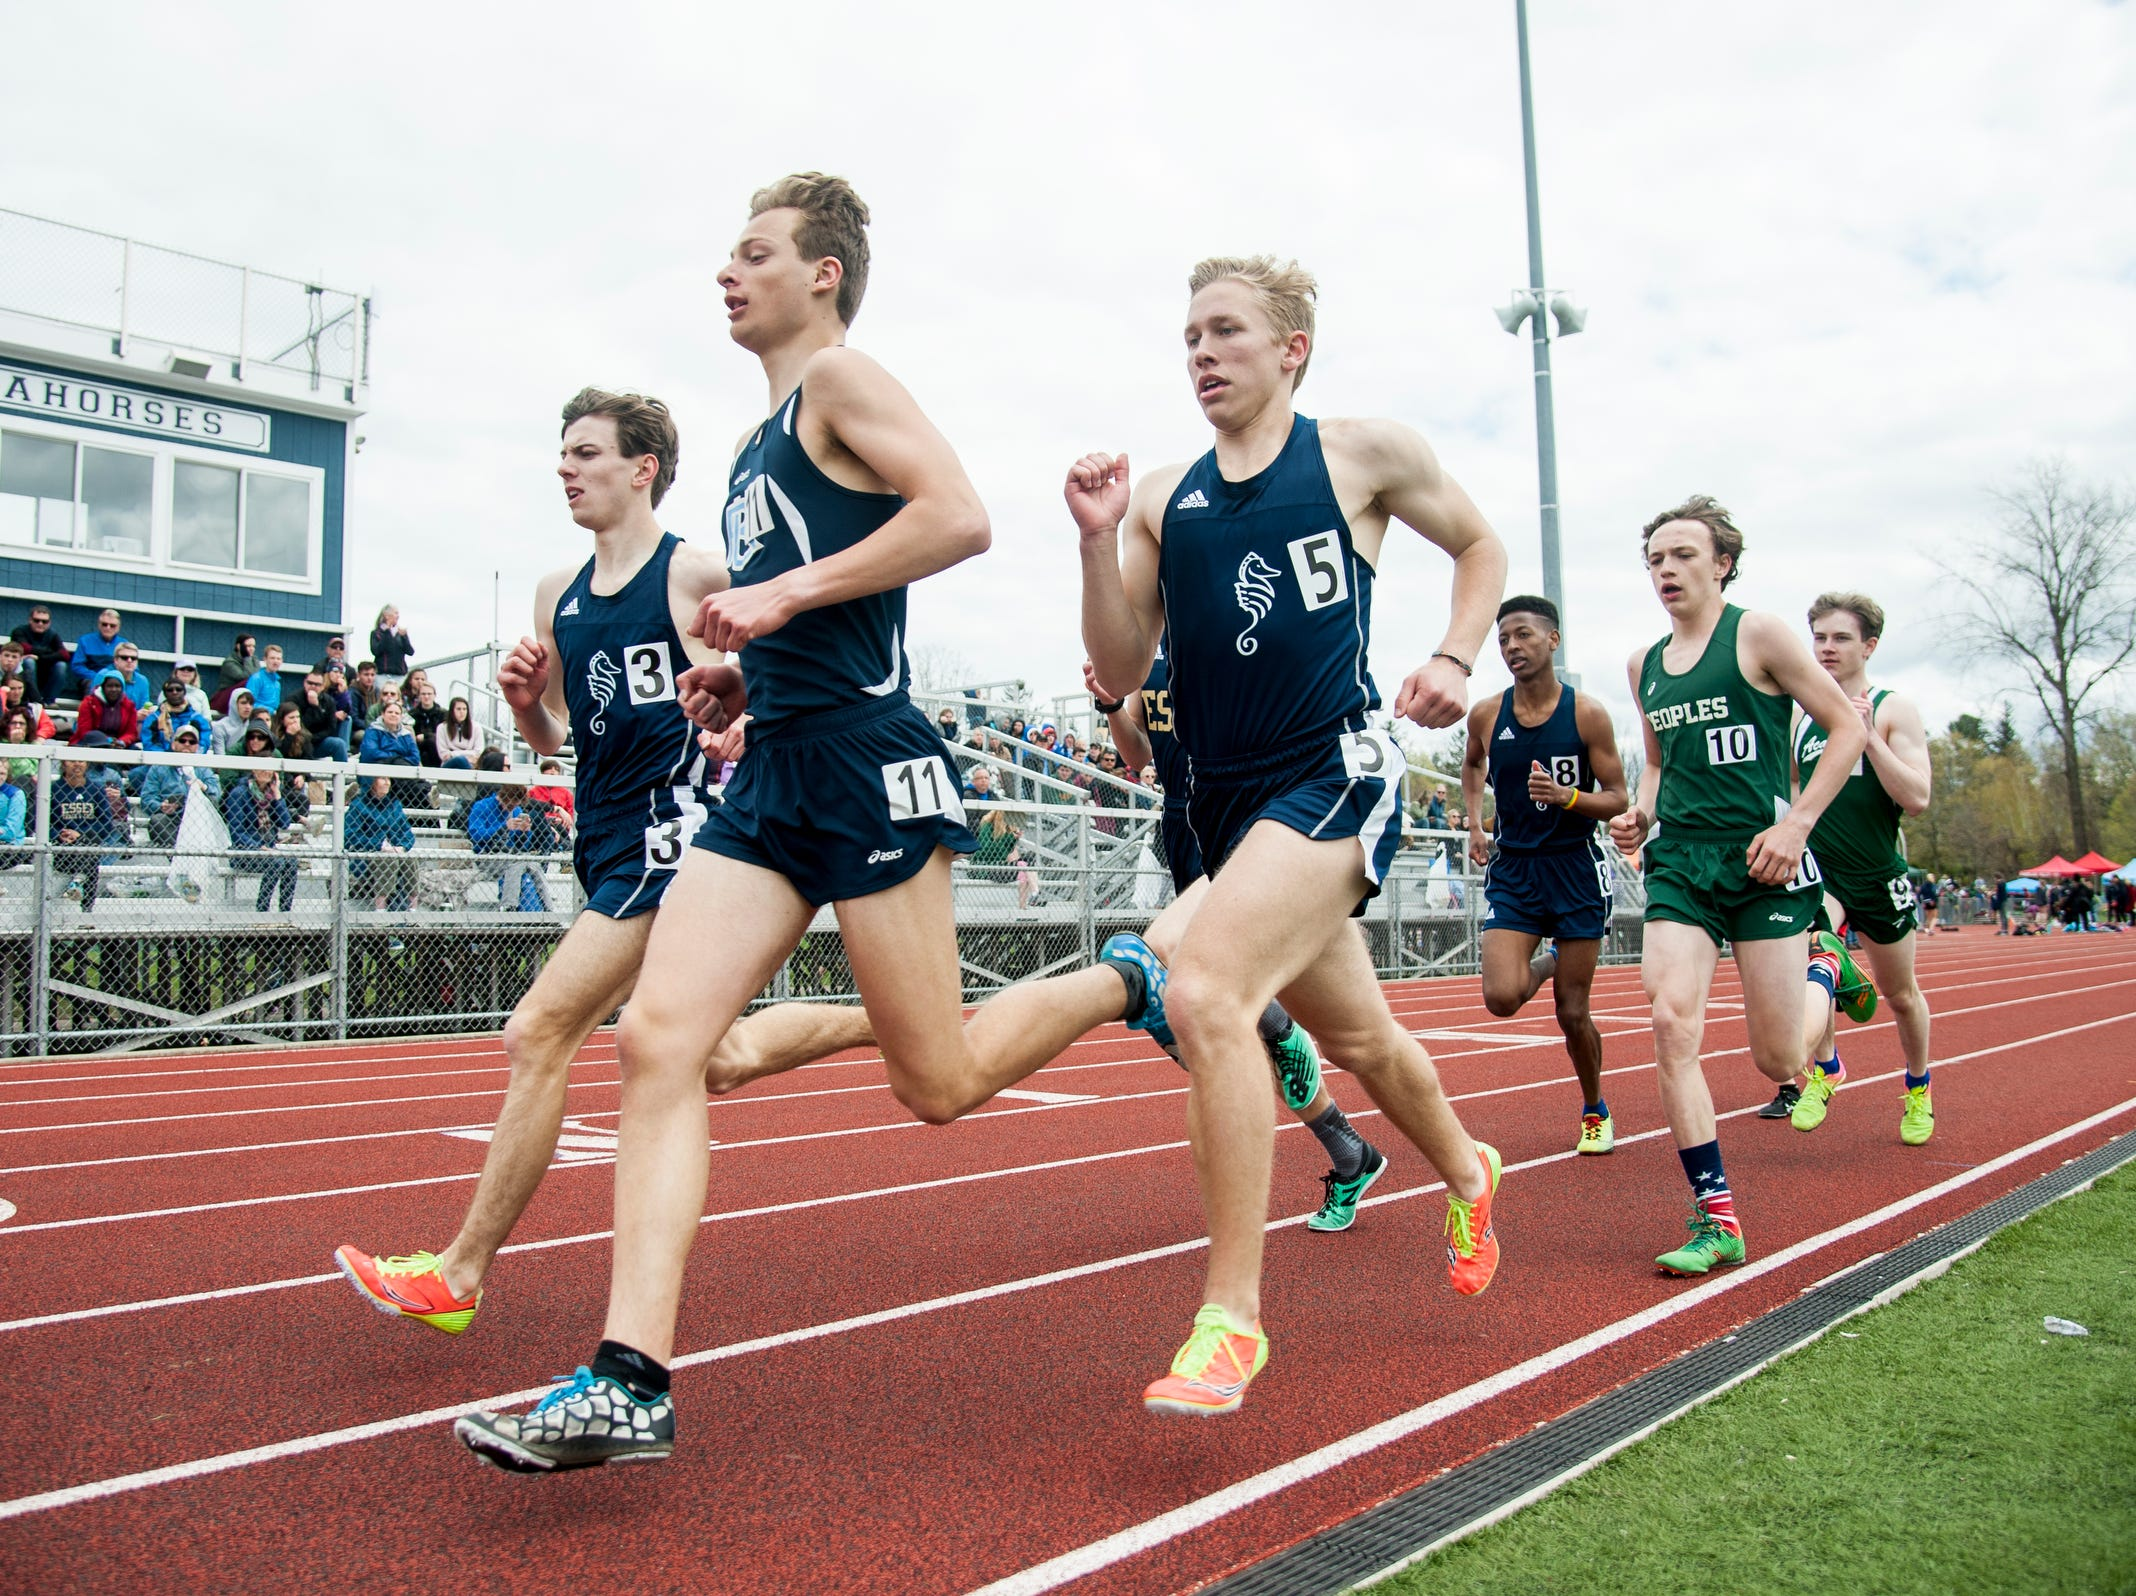 Boys compete in the 1500m race during the Burlington Invitational high school track and field meet at Buck Hard Field on Saturday May 11, 2019 in Burlington, Vermont.